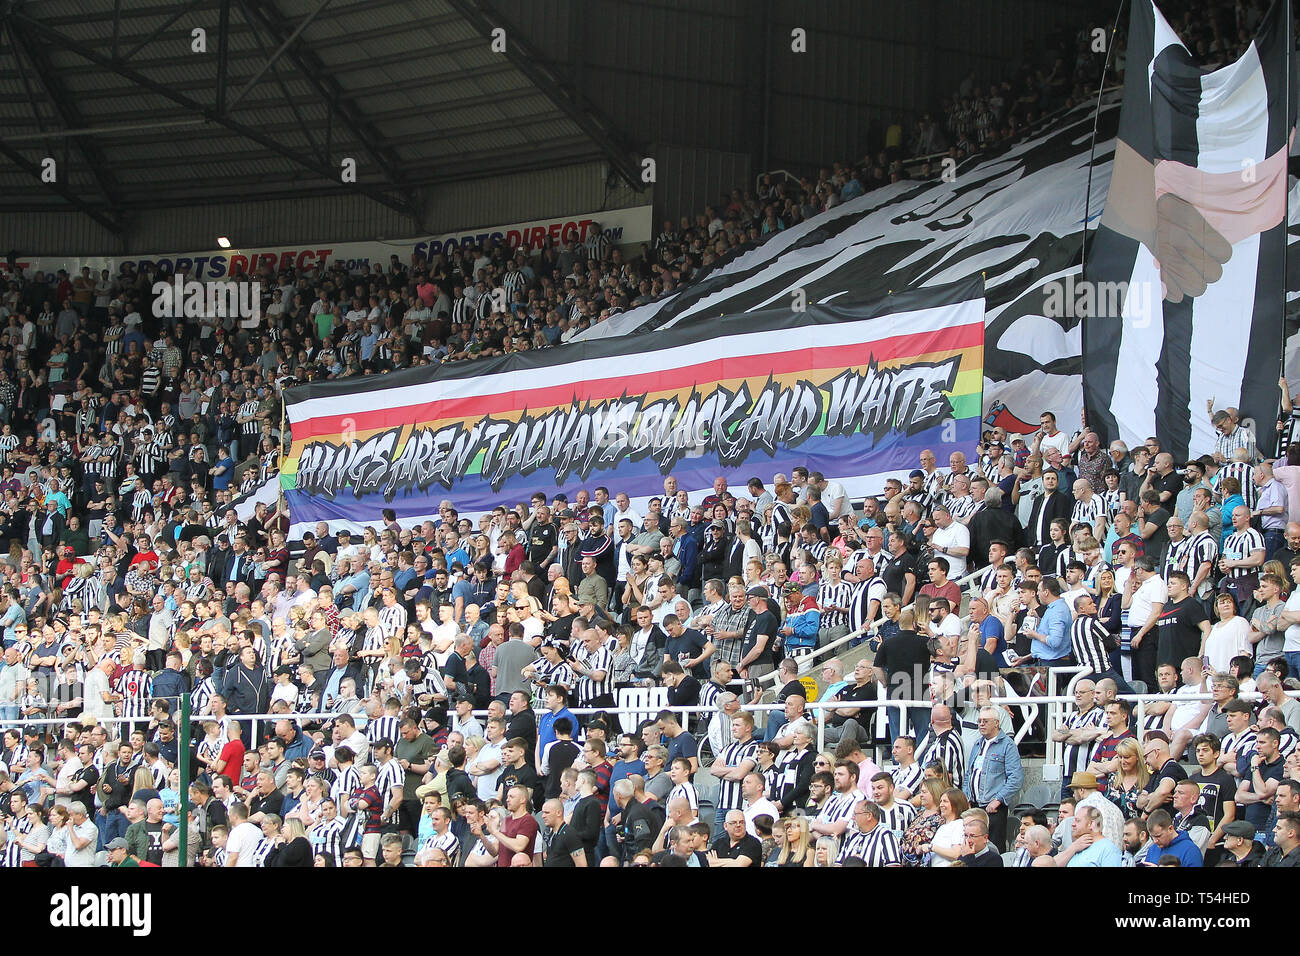 Newcastle United fans unveil a banner in support of LGBT and anti racism during the Premier League match between Newcastle United and Southampton at St. James's Park, Newcastle   Editorial use only, license required for commercial use. No use in betting, games or a single club/league/player publications. Photograph may only be used for newspaper and/or magazine editorial purposes. May not be used for publications involving 1 player, 1 club or 1 competition without written authorisation from Football Data Co Ltd. Credit: MI News & Sport /Alamy Live News - Stock Image